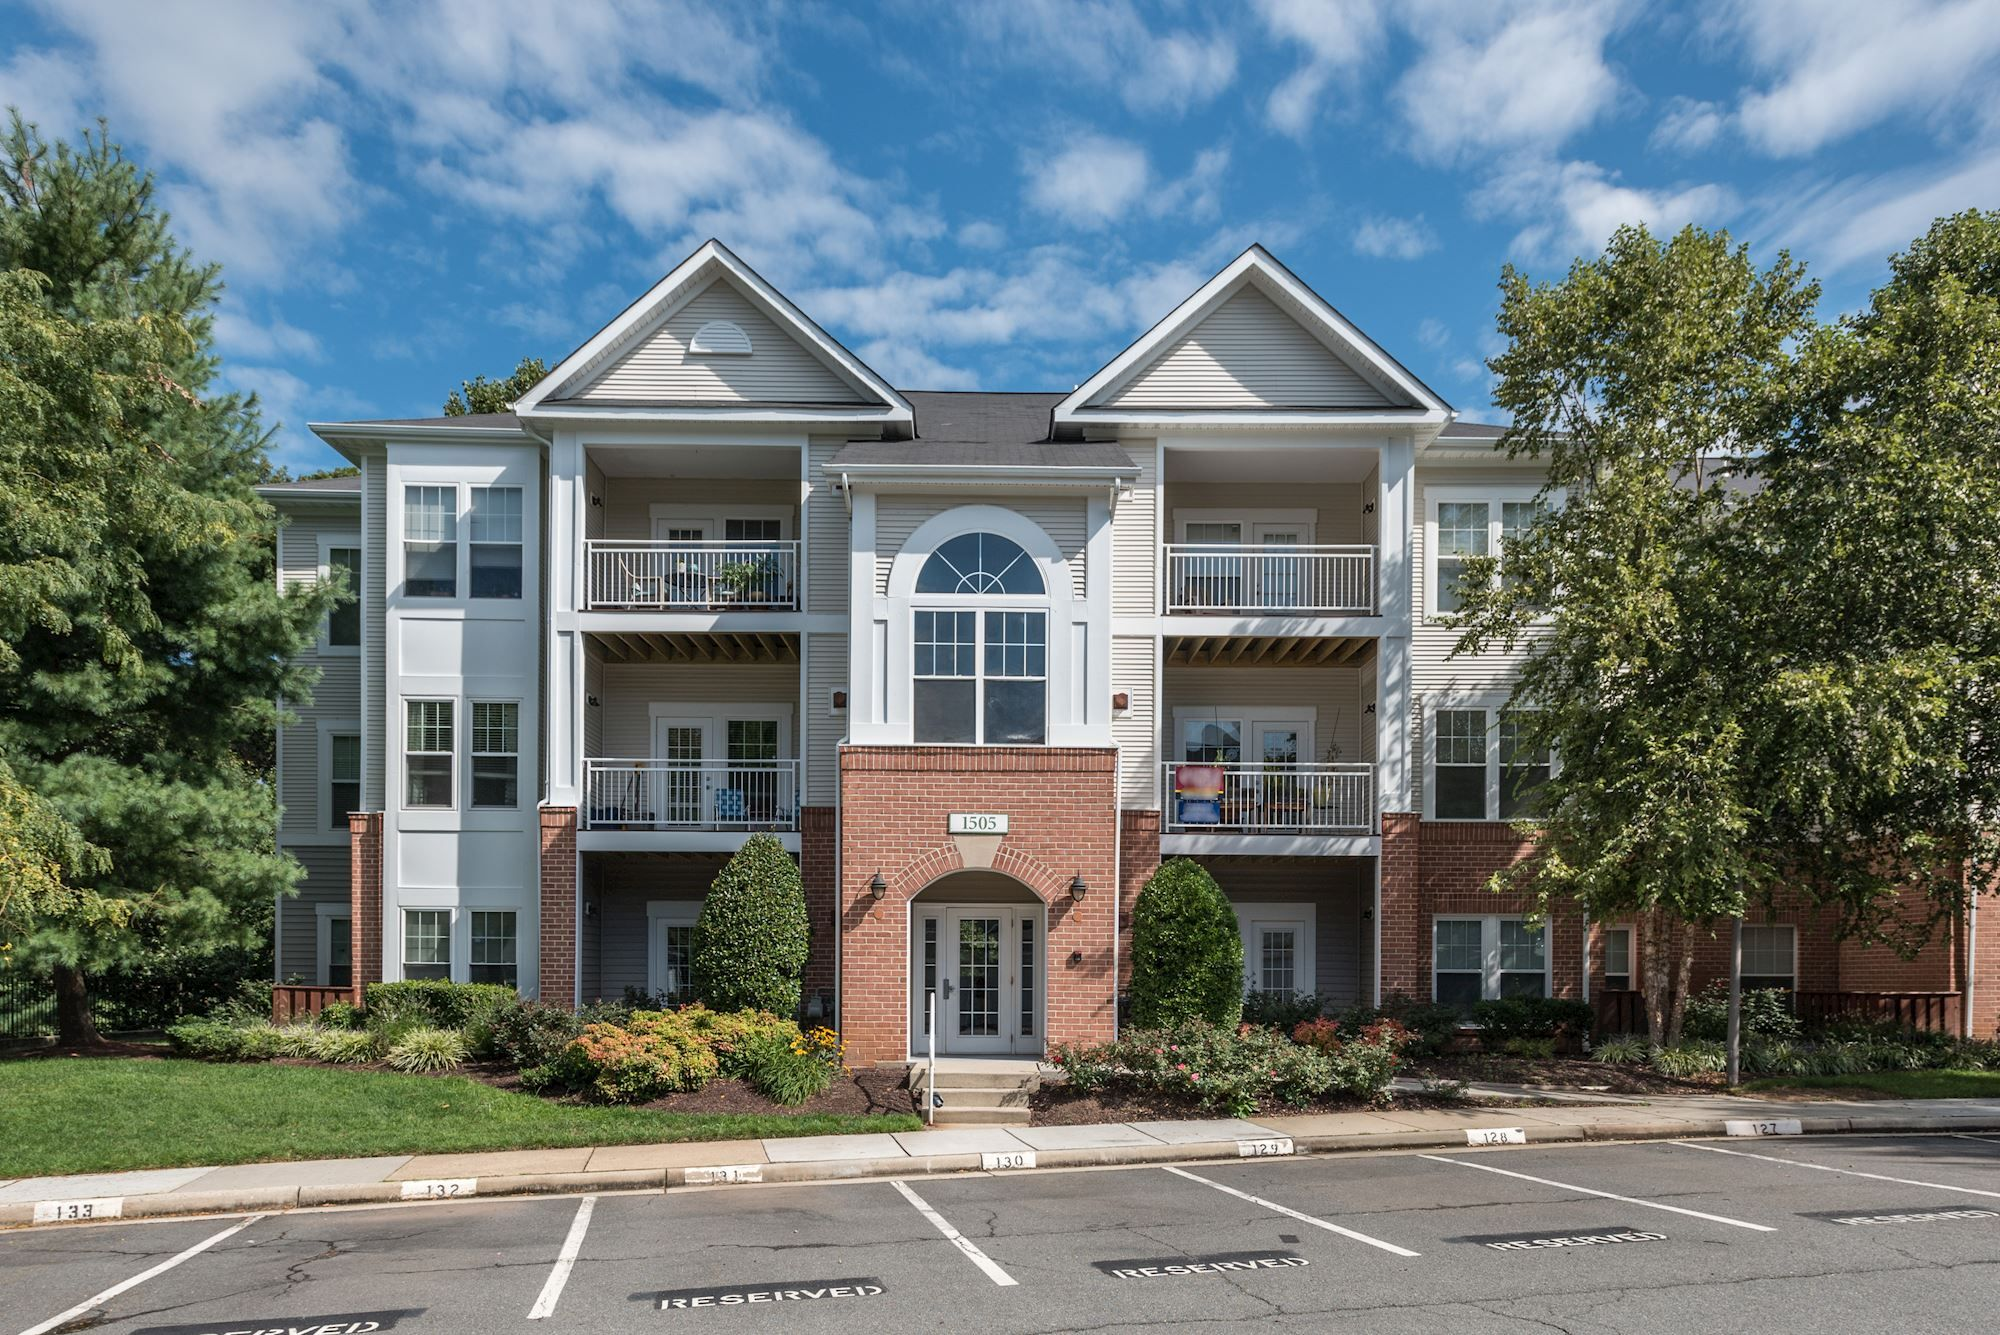 1505 North Point Drive, #202 Reston, VA 20194 List Price: $299,900 September